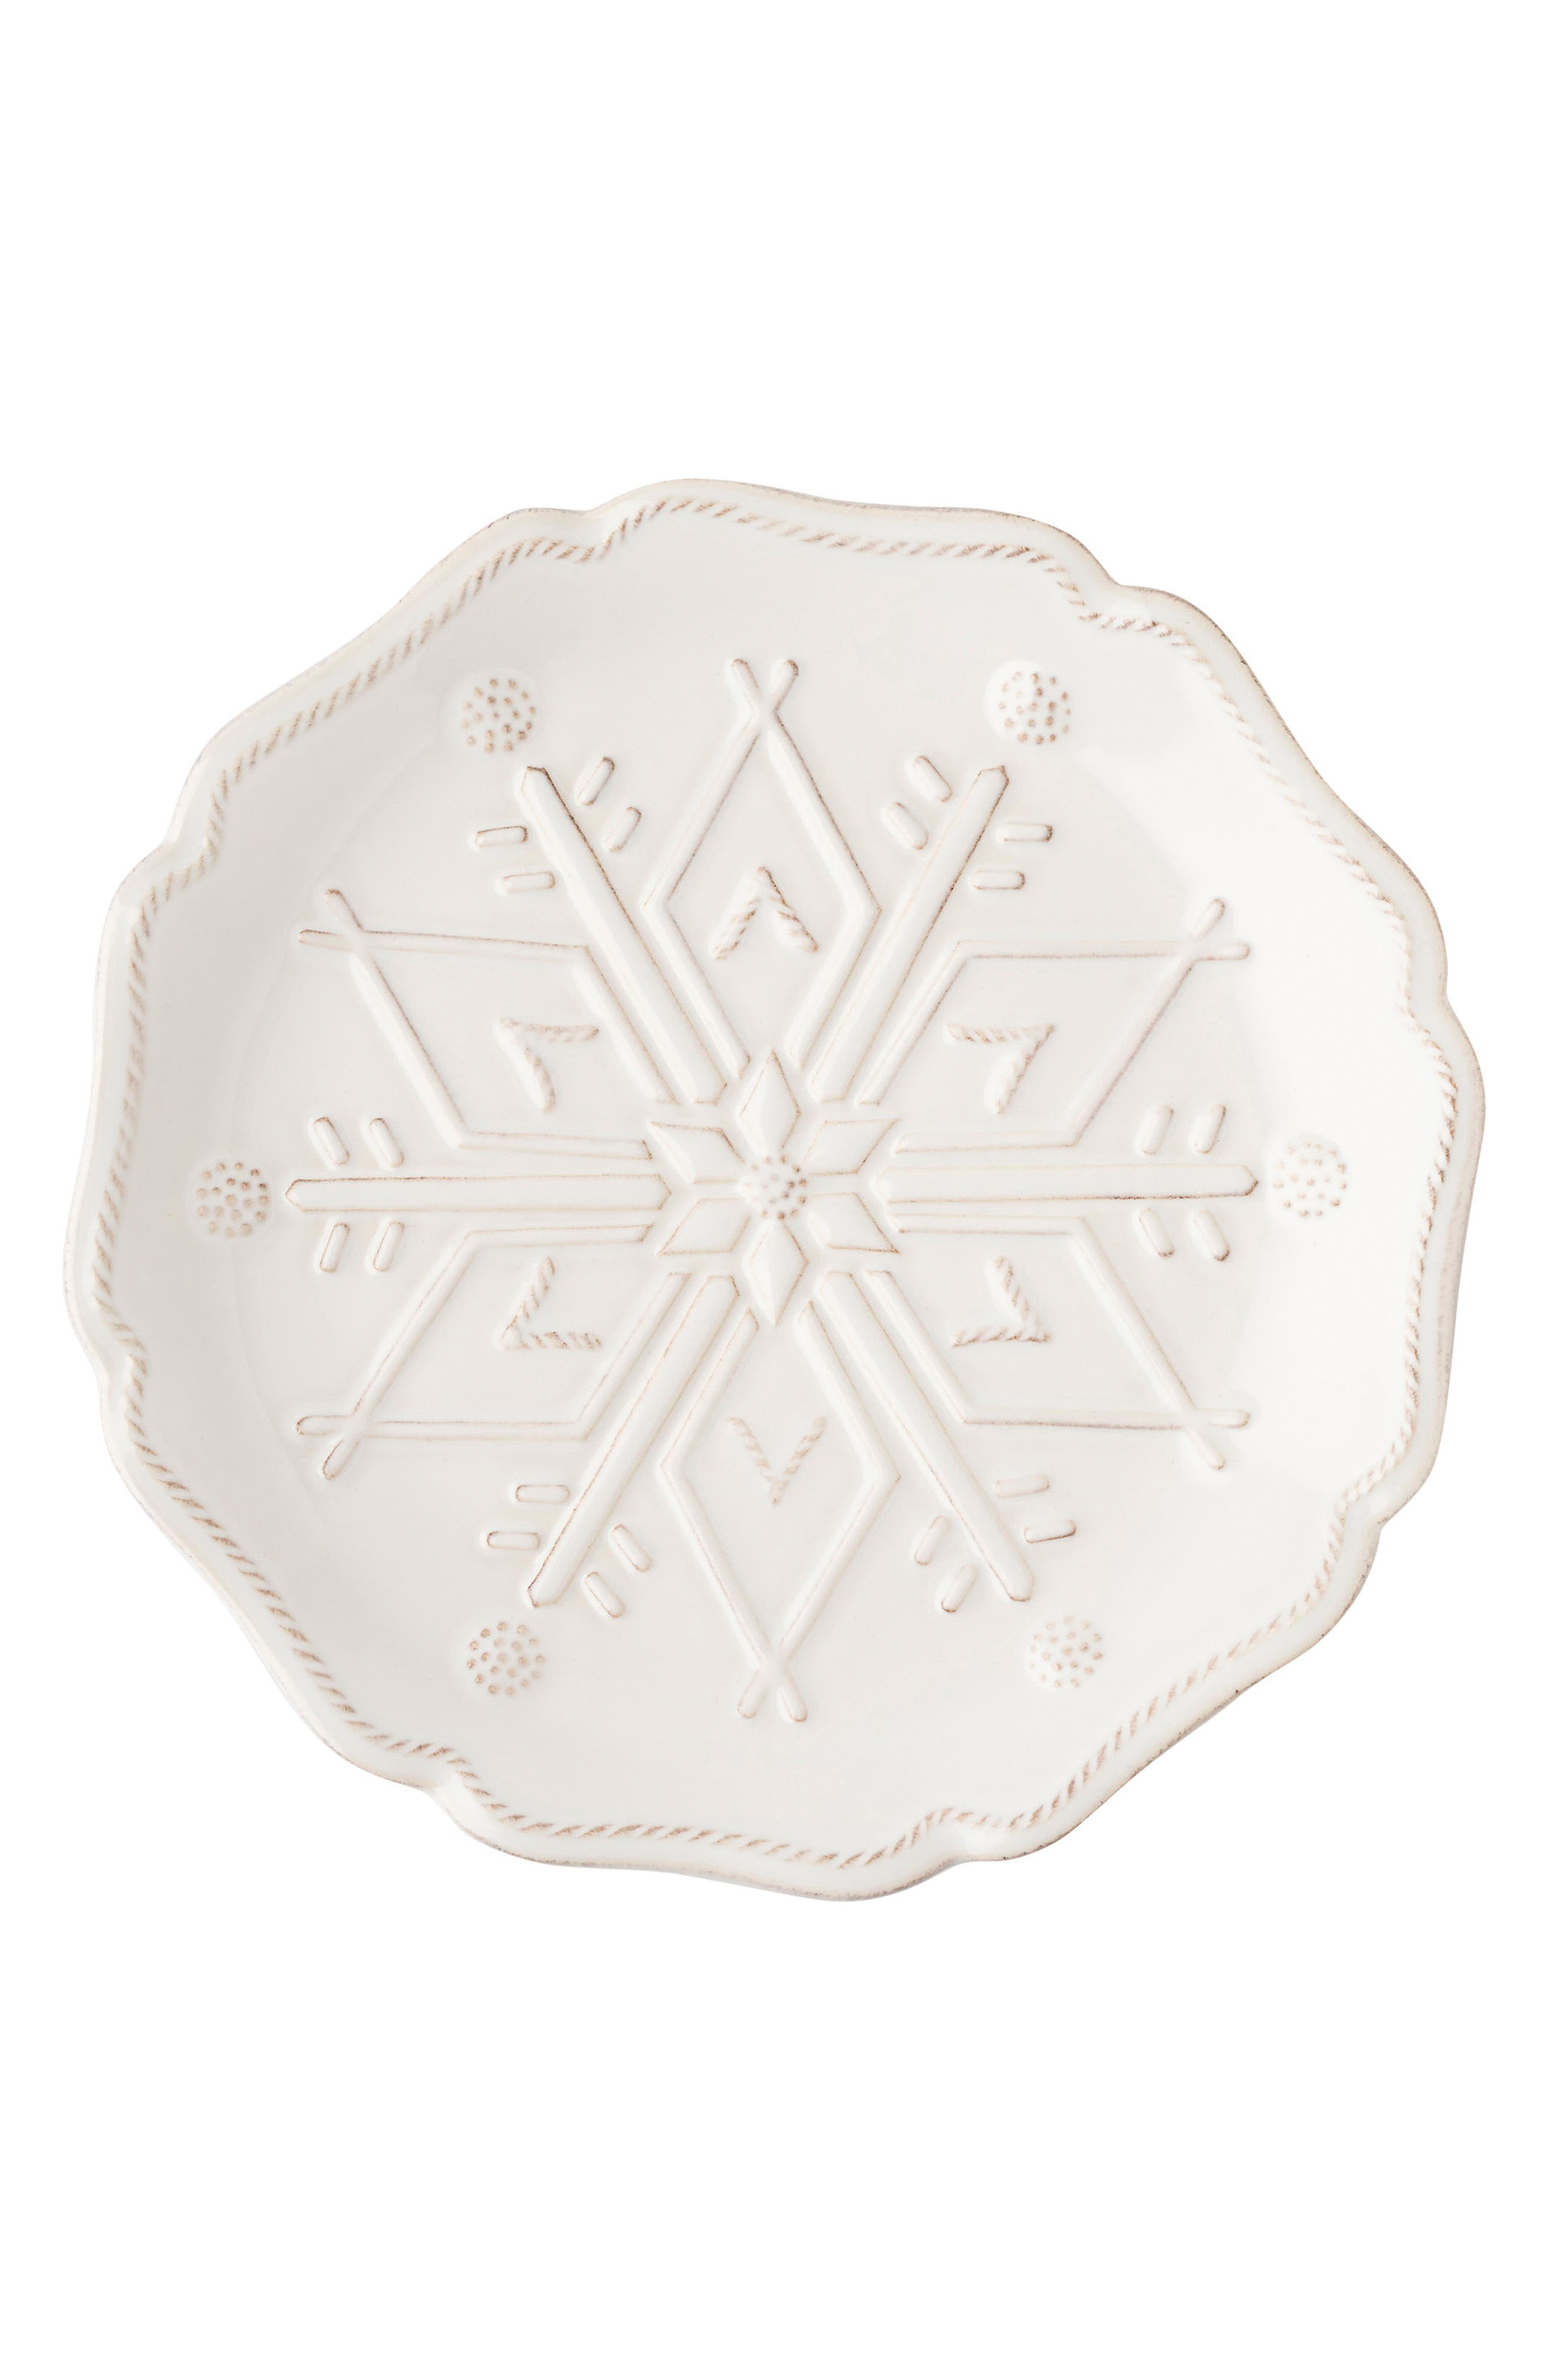 Snowfall Whitewash Set of 4 Ceramic Tidbit Plates,                             Alternate thumbnail 4, color,                             100